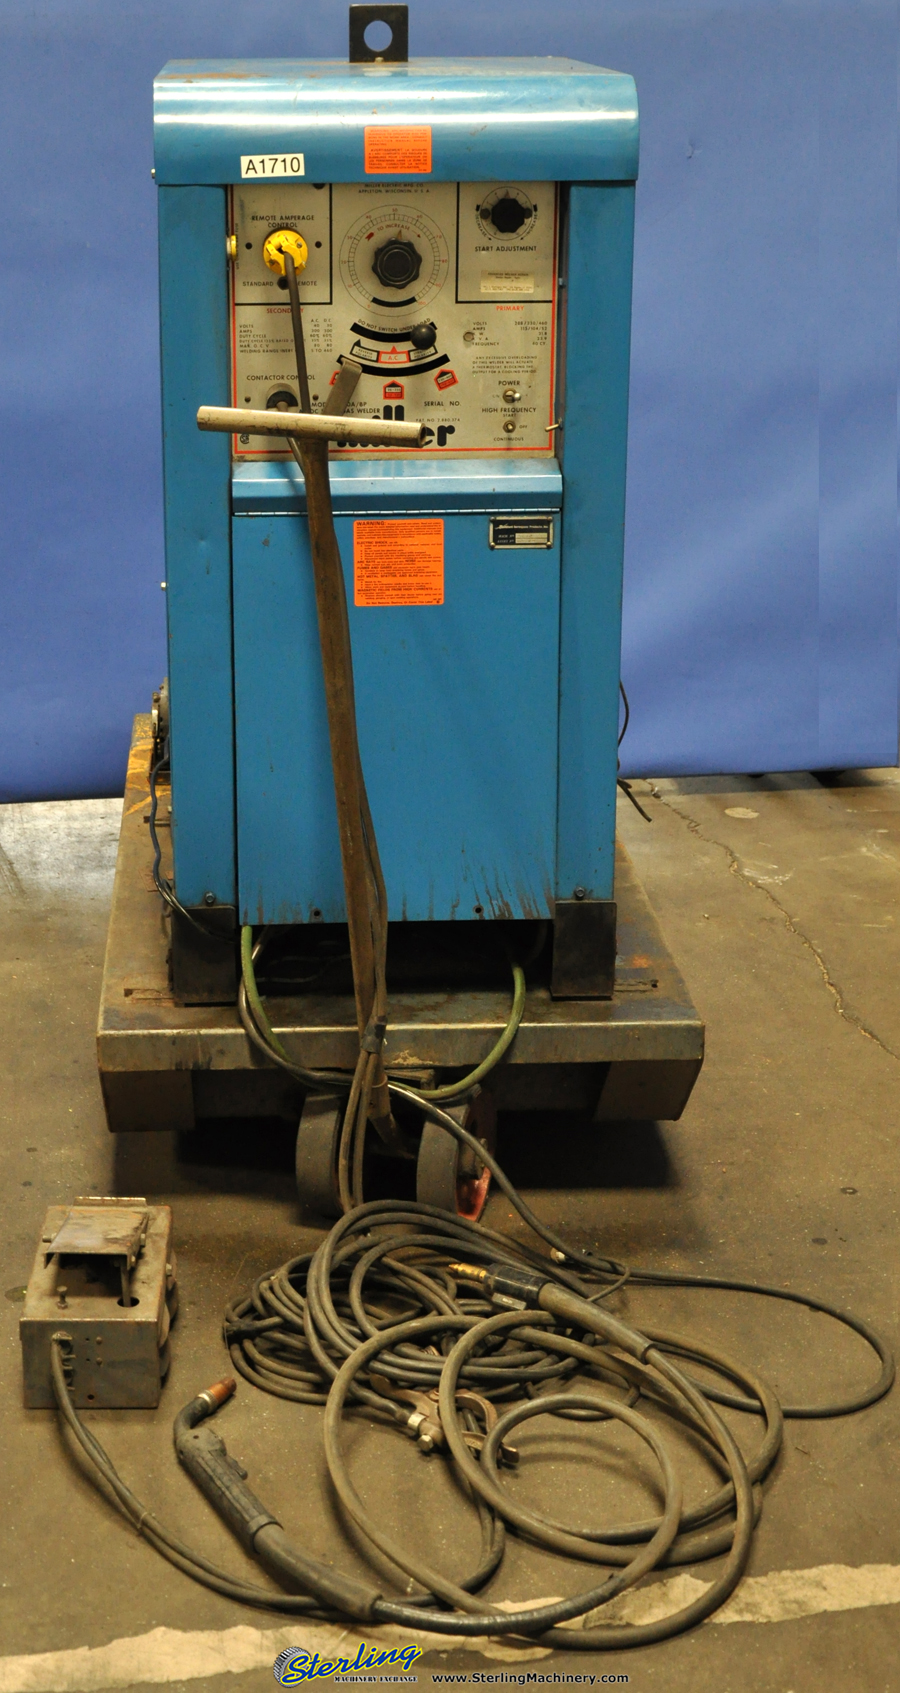 hight resolution of a1710 300 amp used miller tig welder mdl 330 a bp sterling machinery at cita